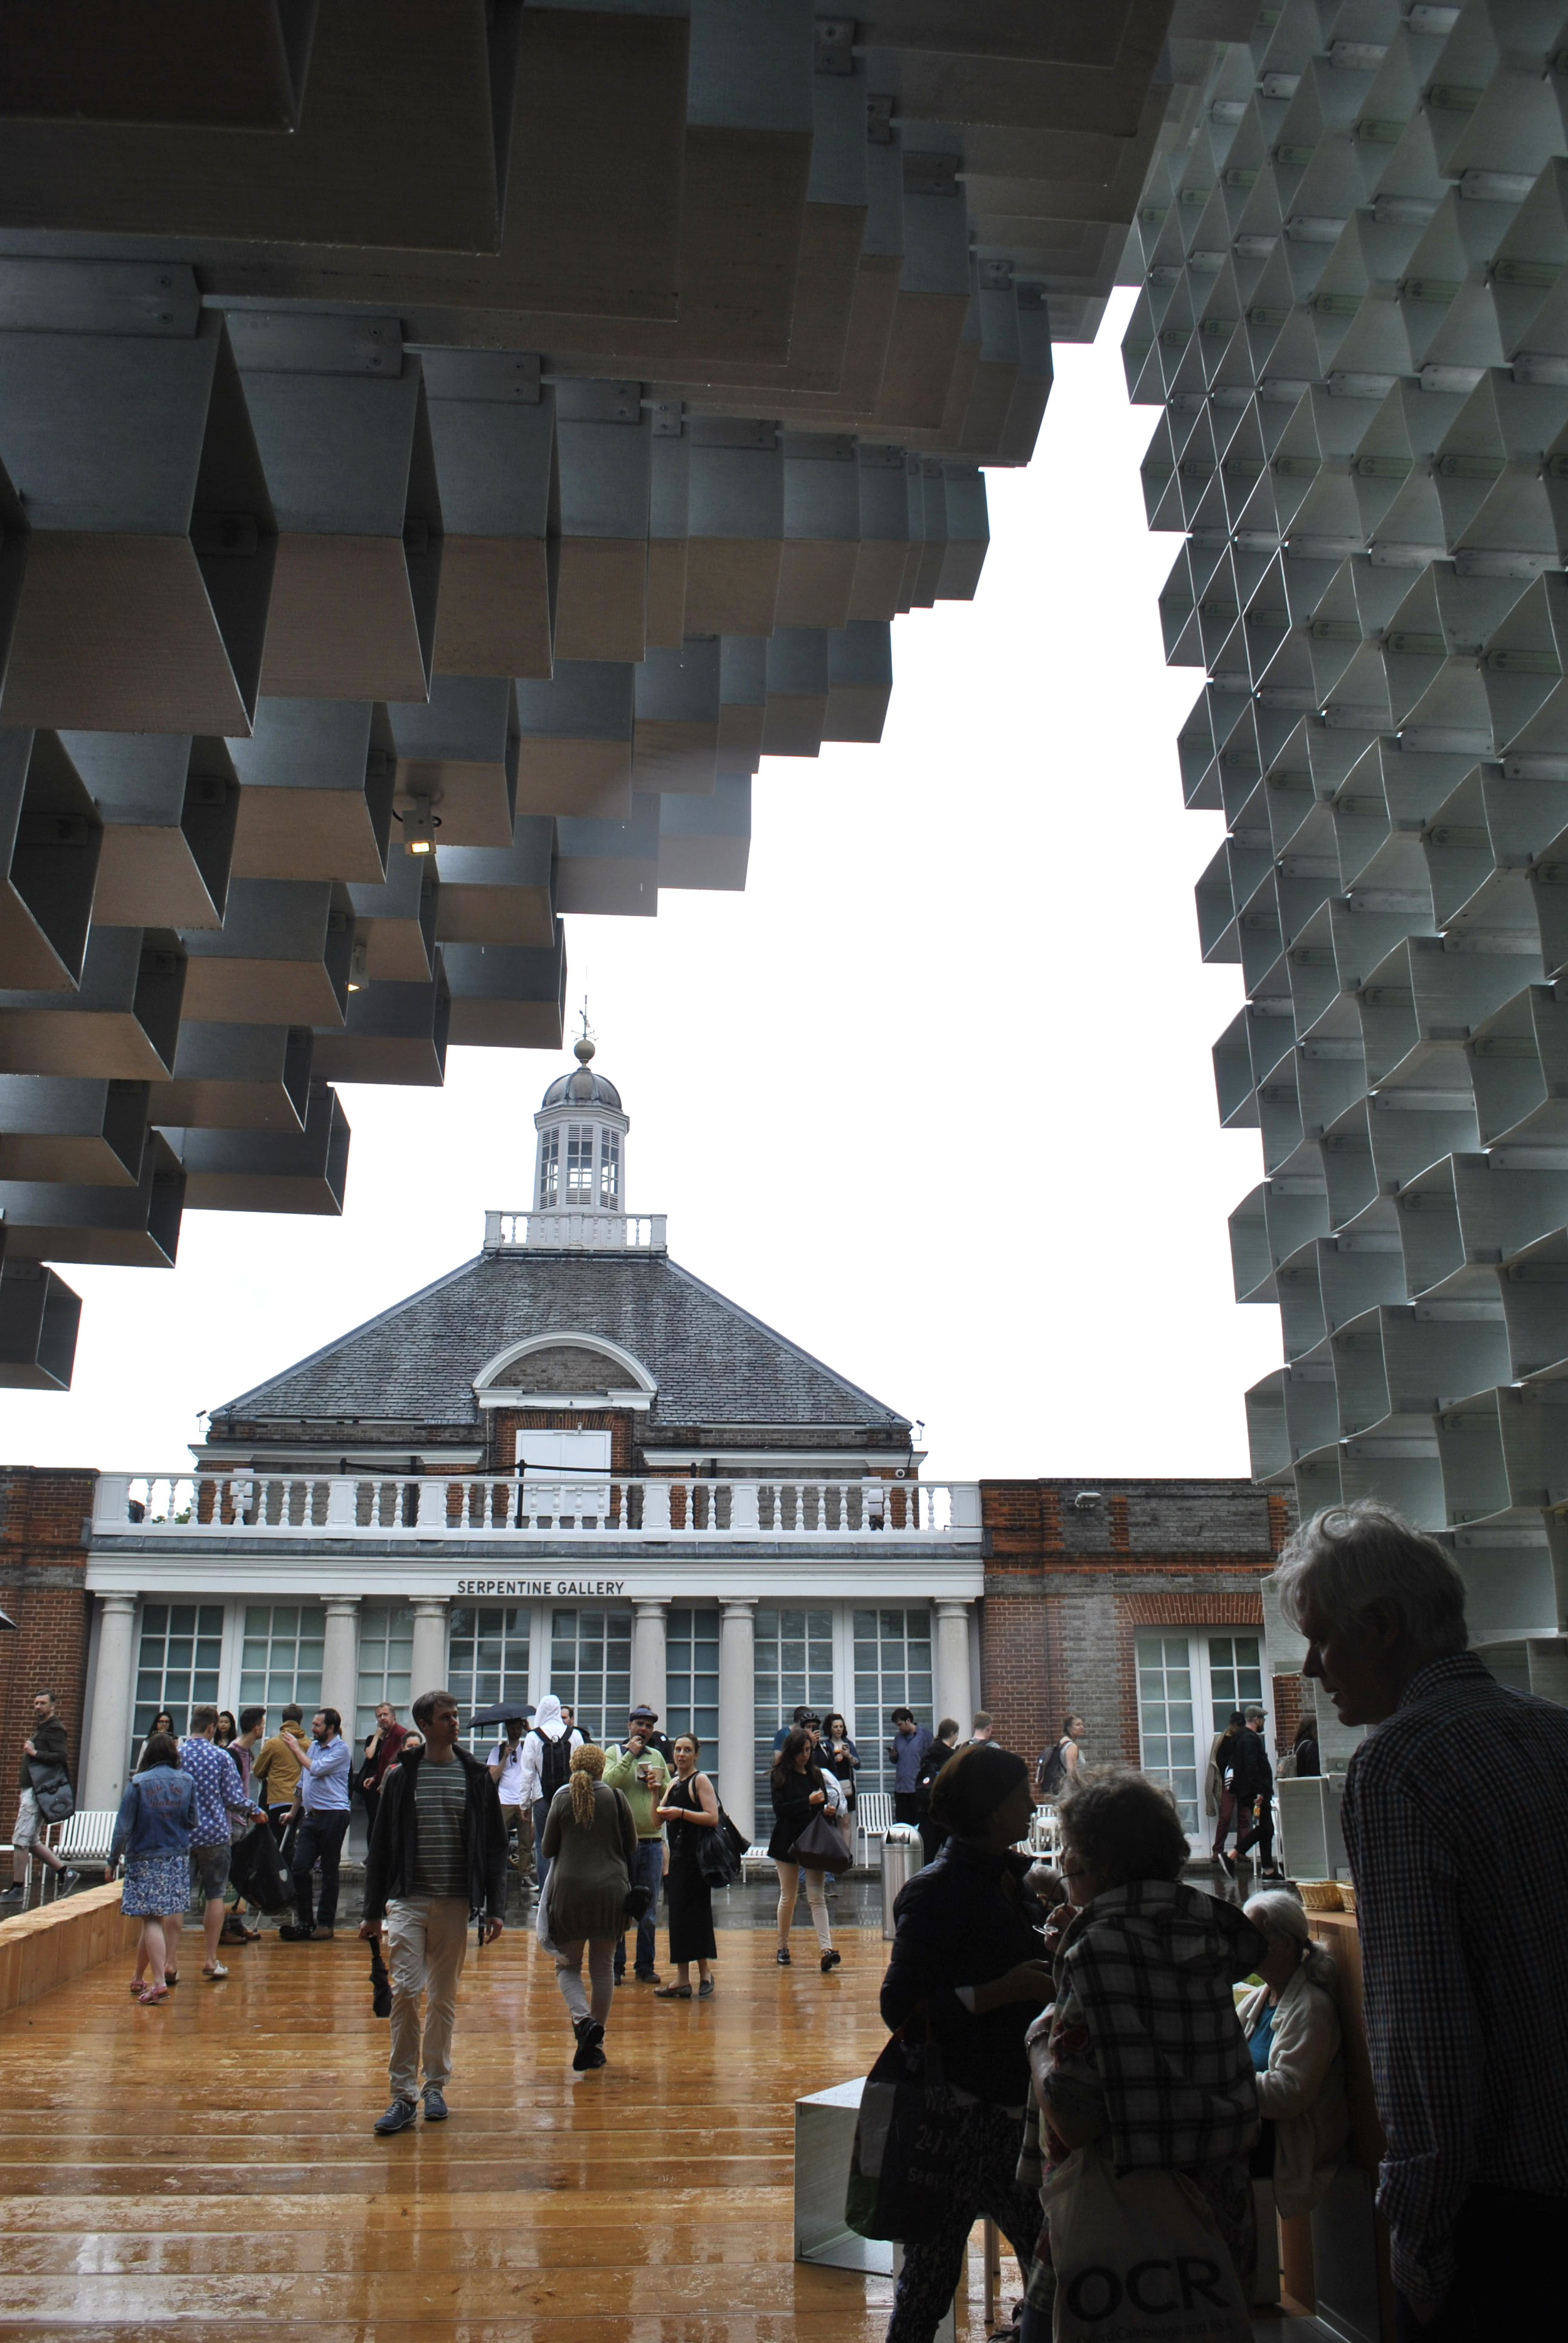 ©Detail Movement - Serpentine Gallery from inside the pavilion